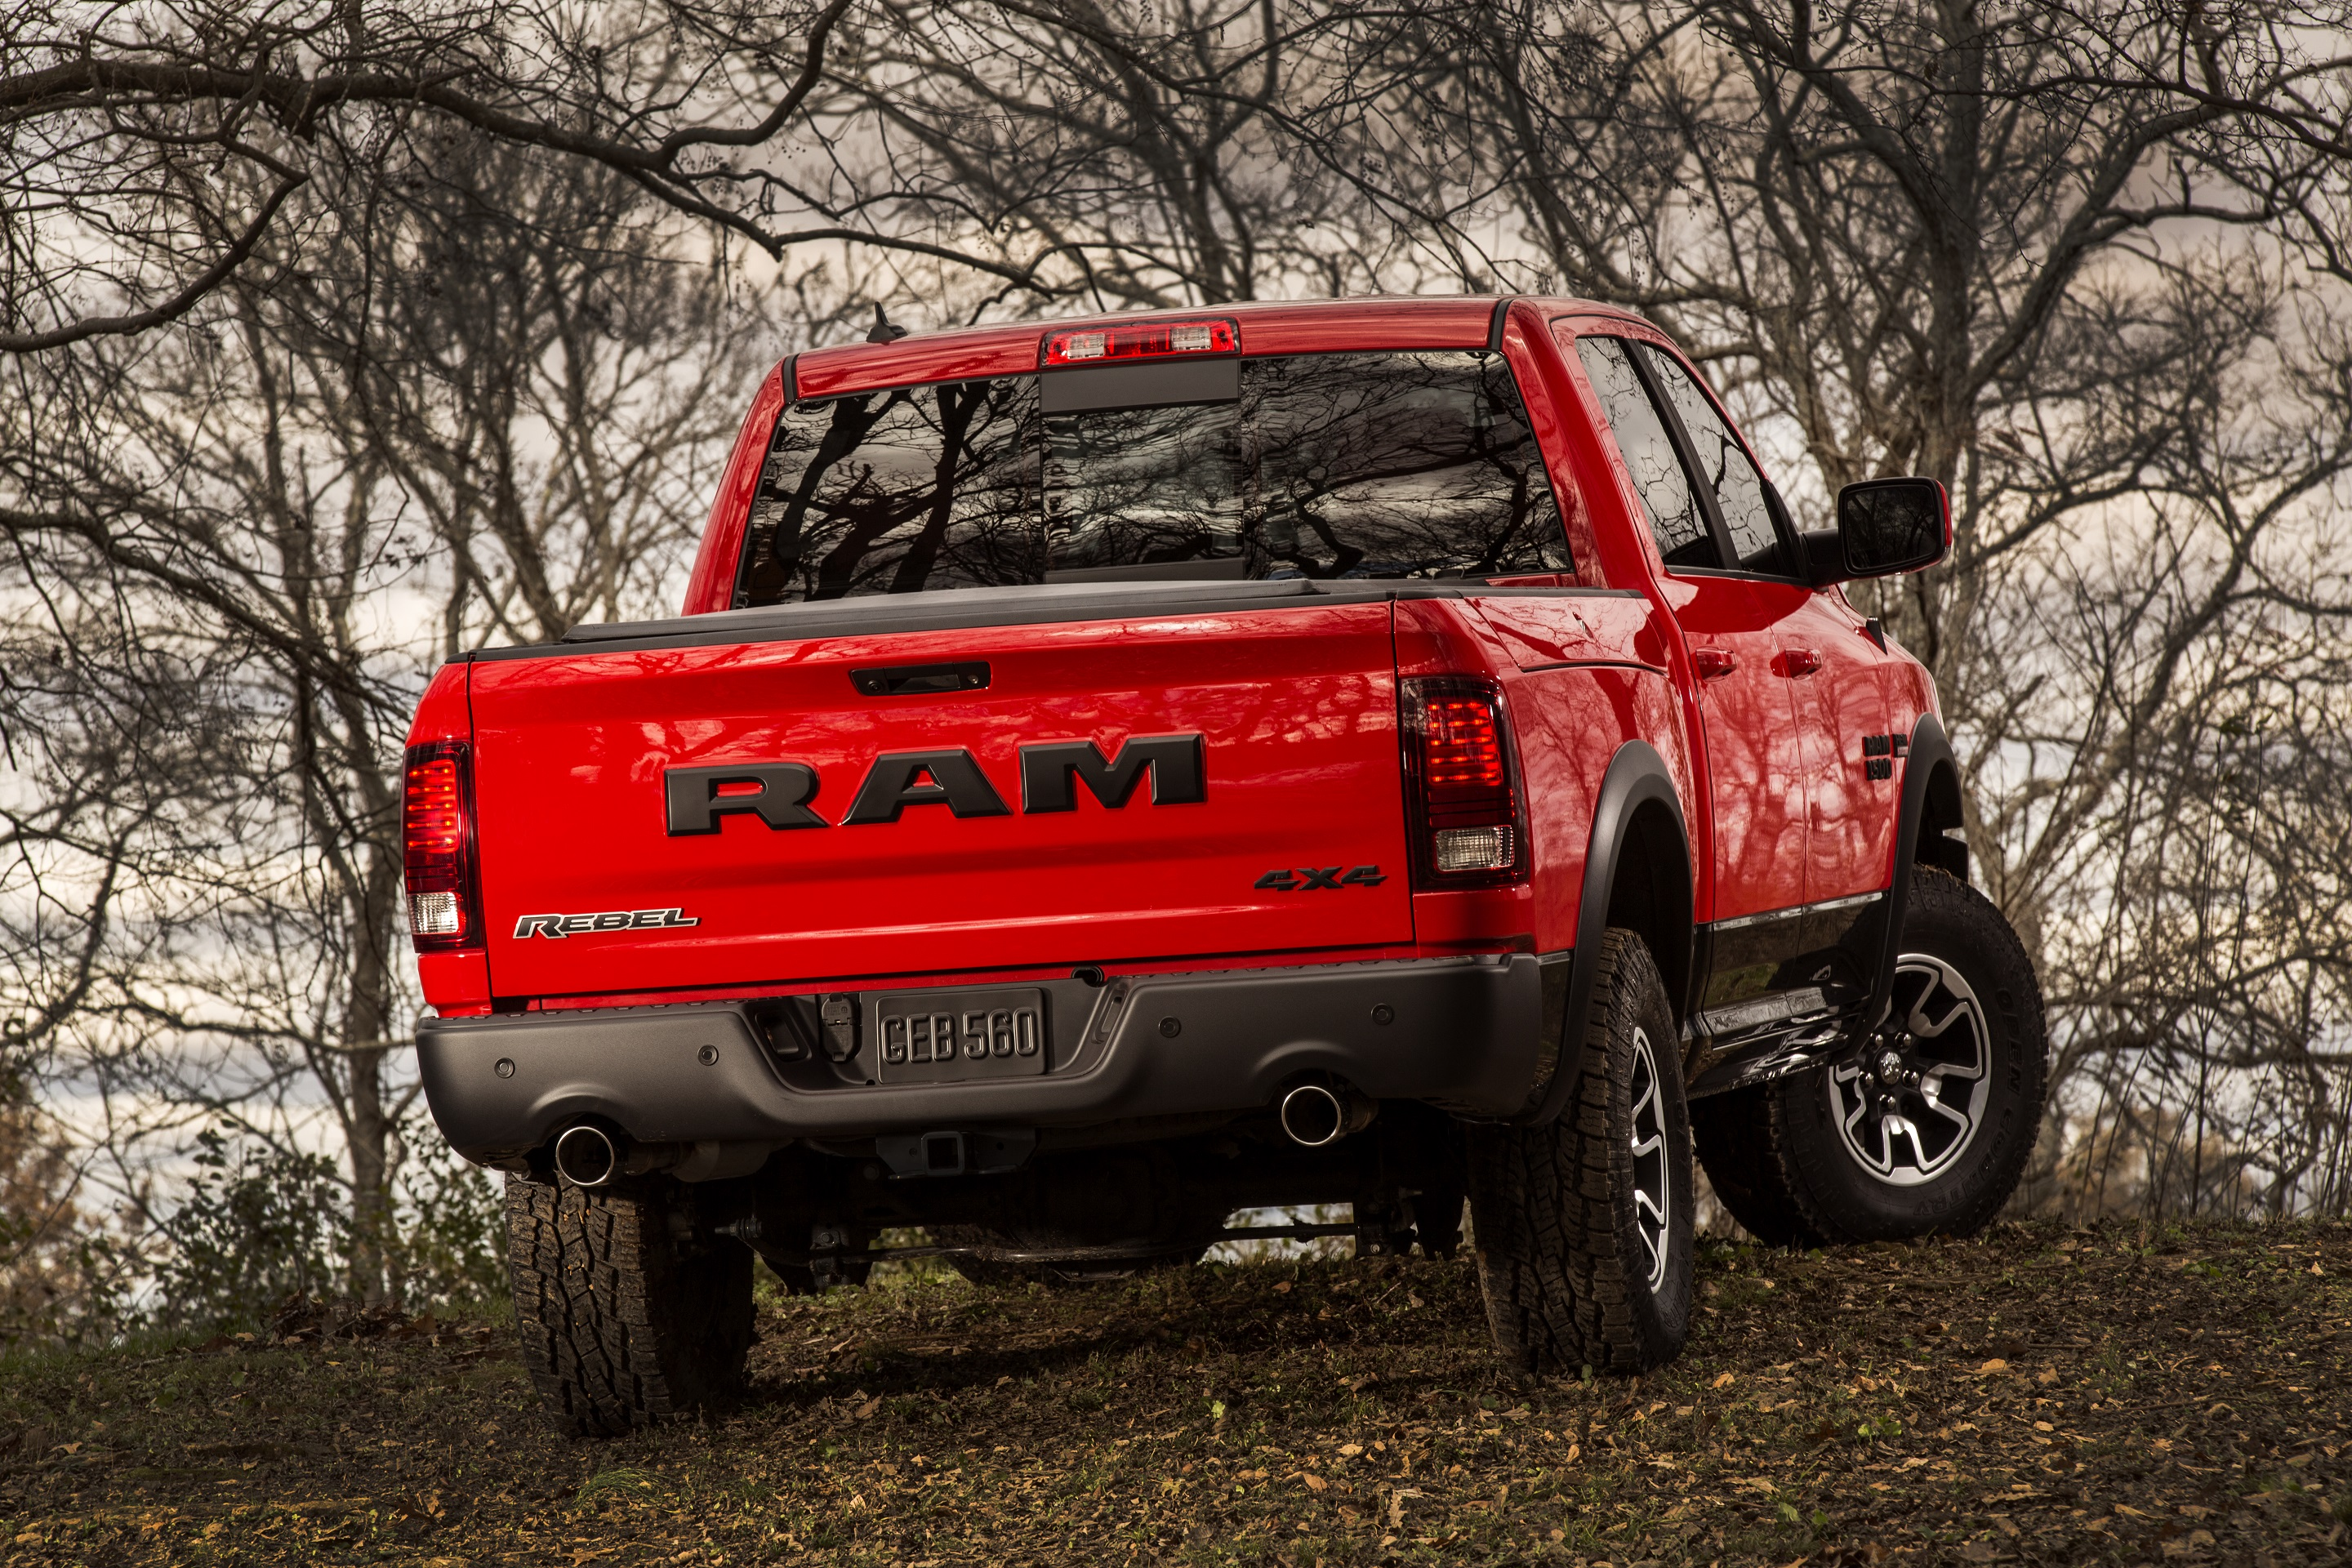 Ram Truck available in Virginia, MN at Waschke Family Chrysler Dodge Jeep Ram